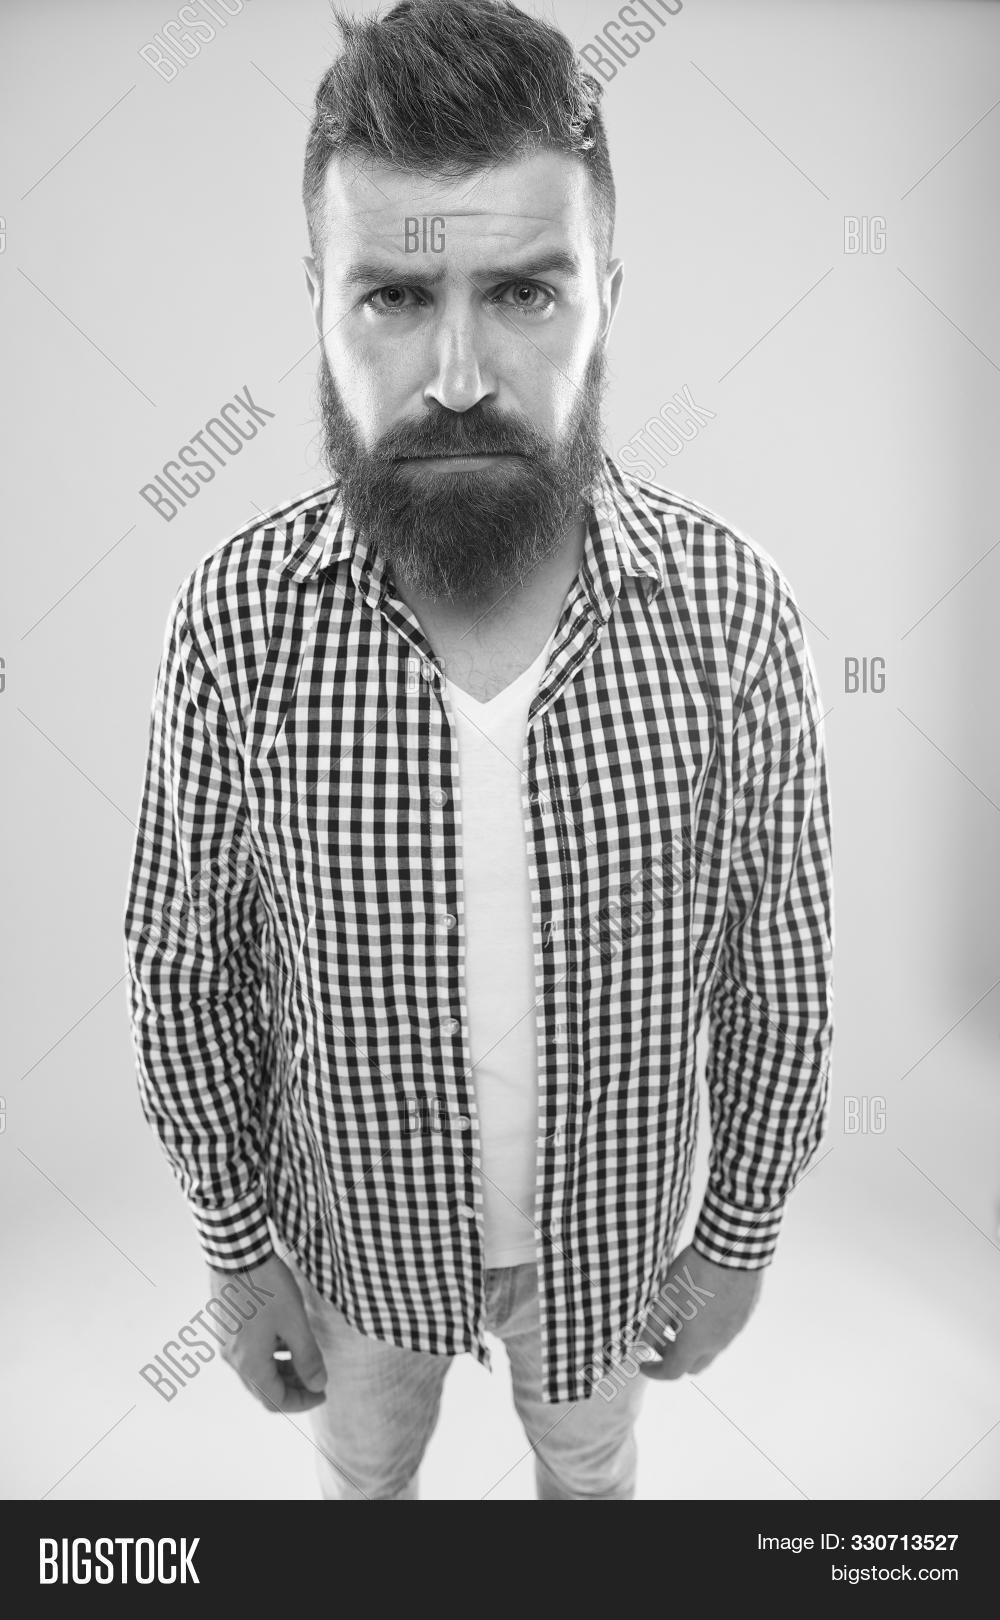 adult,alone,appearance,background,barber,beard,bearded,brutal,care,casual,caucasian,concept,emotional,expression,face,fashion,fashionable,guy,haircut,hairdresser,handsome,hipster,lonely,lumbersexual,macho,maintain,man,masculine,masculinity,mustache,offended,sad,serious,strict,stylish,tips,unhappy,unshaven,why,yellow